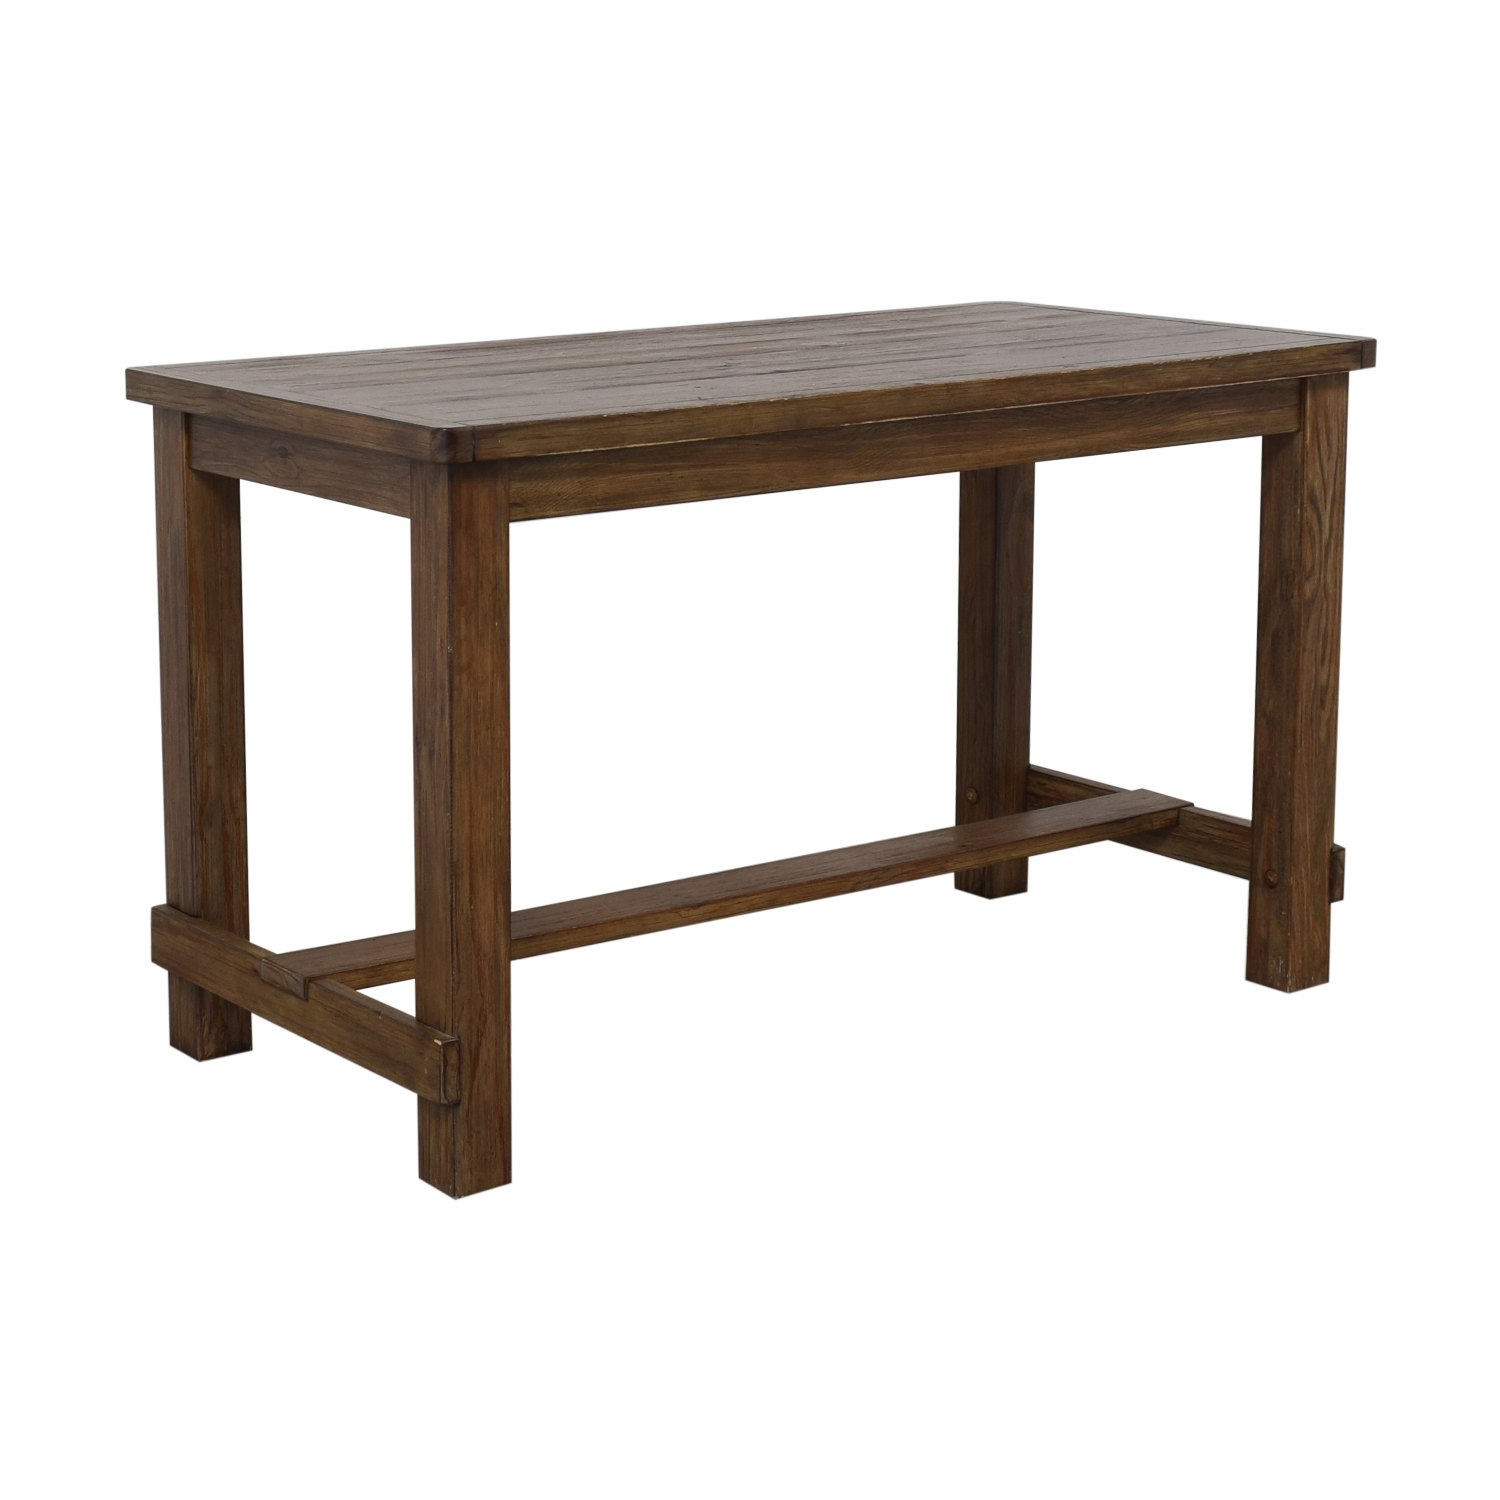 Ashley Furniture Ashley Furniture Wooden Counter Height Kitchen Table coupon